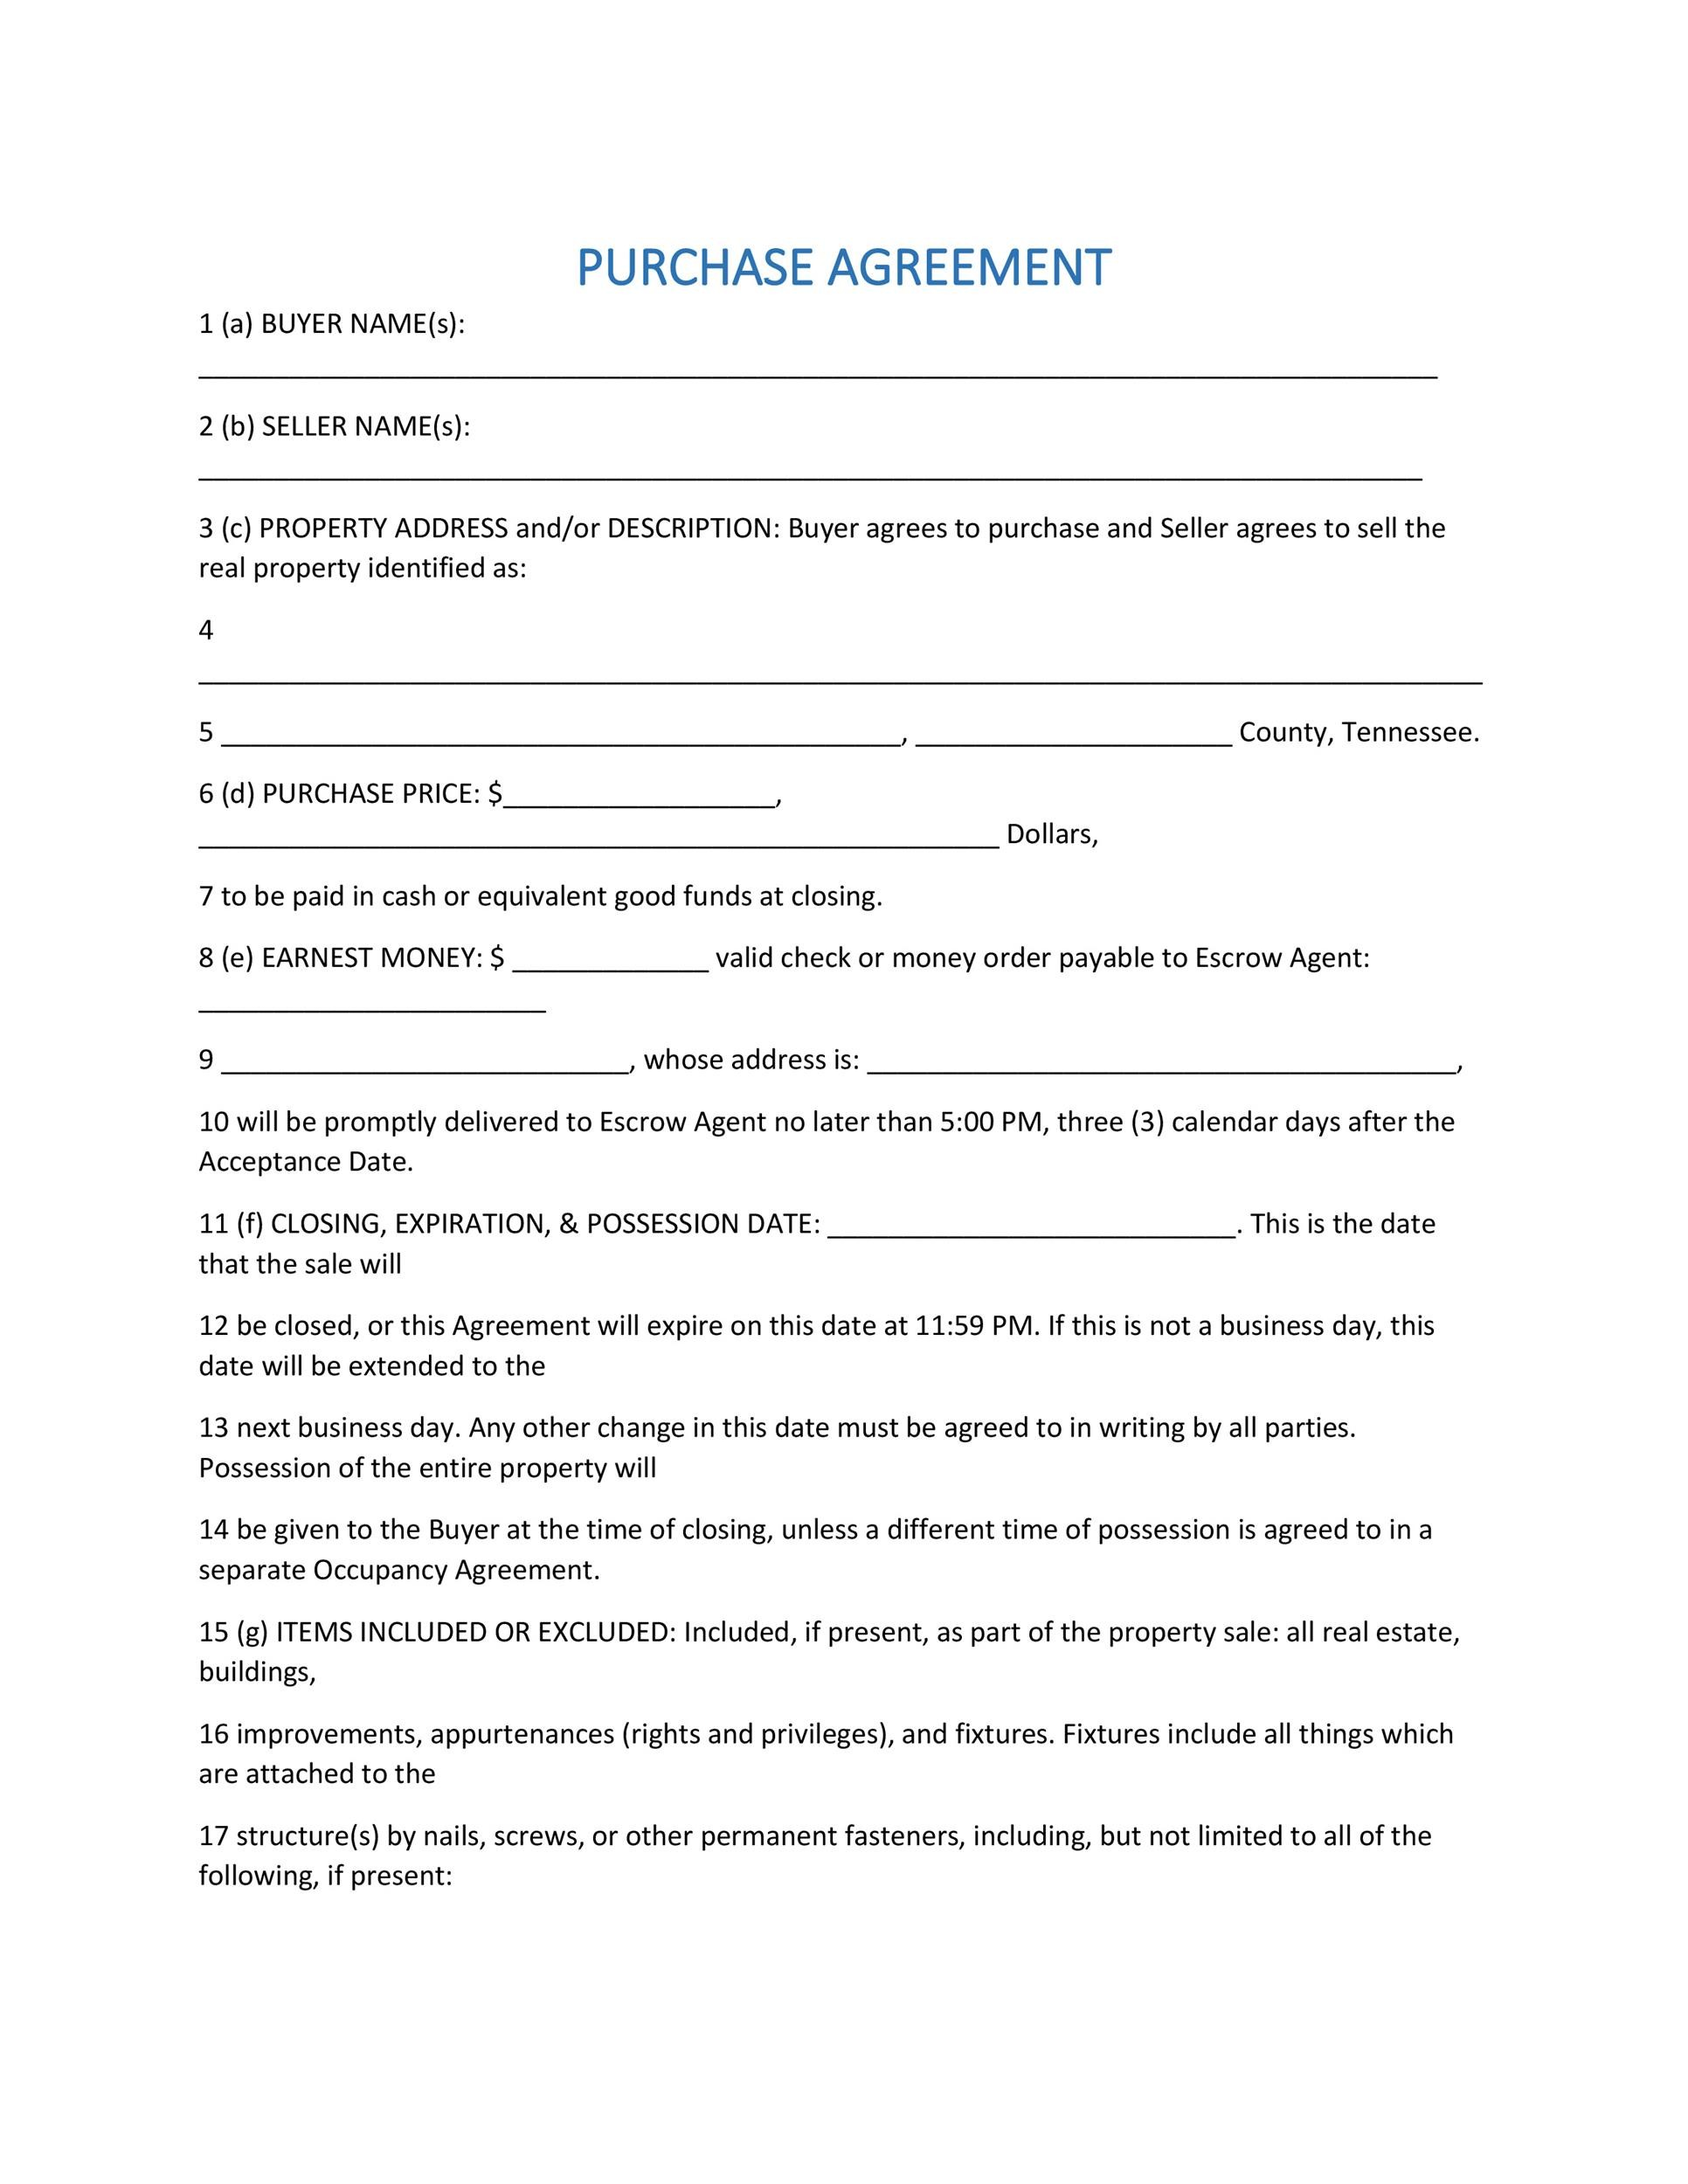 Simple Purchase Agreement Templates Real Estate Business - Simple business agreement template